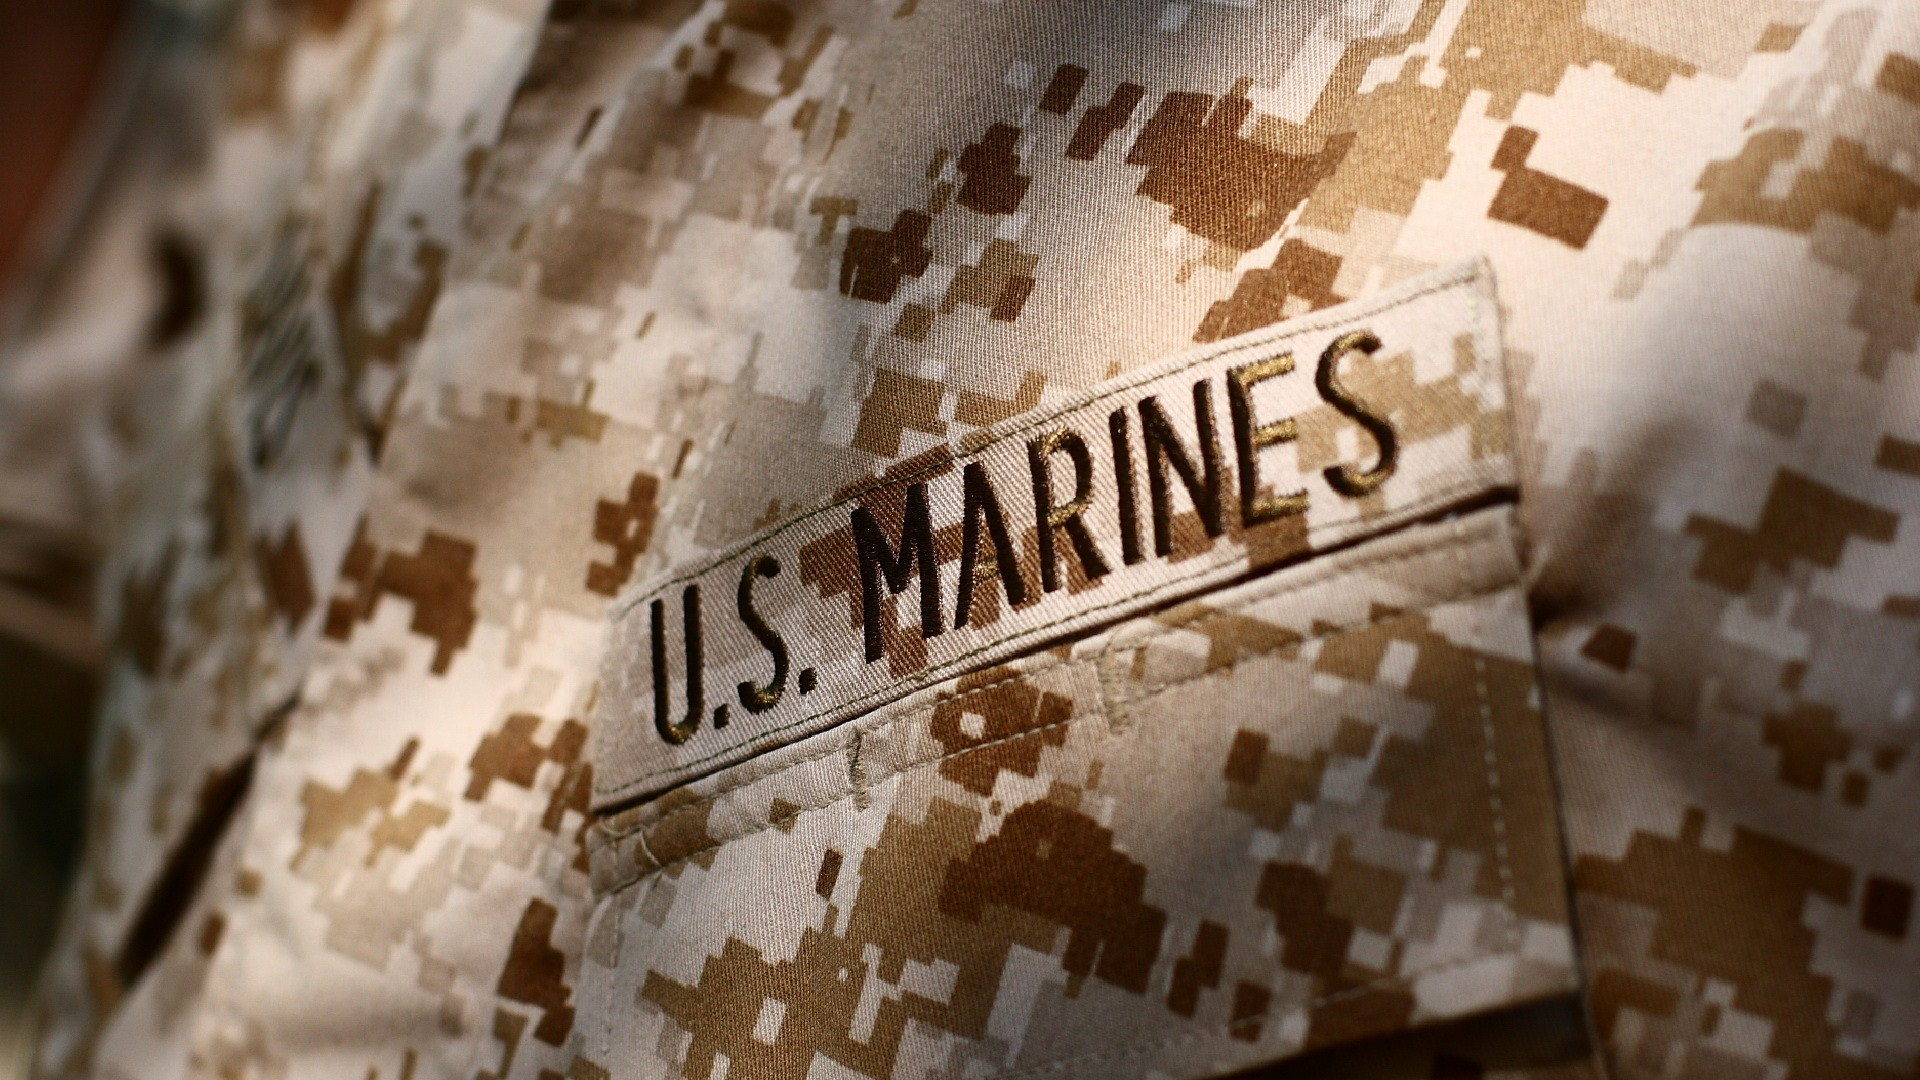 marines full hd wallpaper and background image | 1920x1080 | id:177220